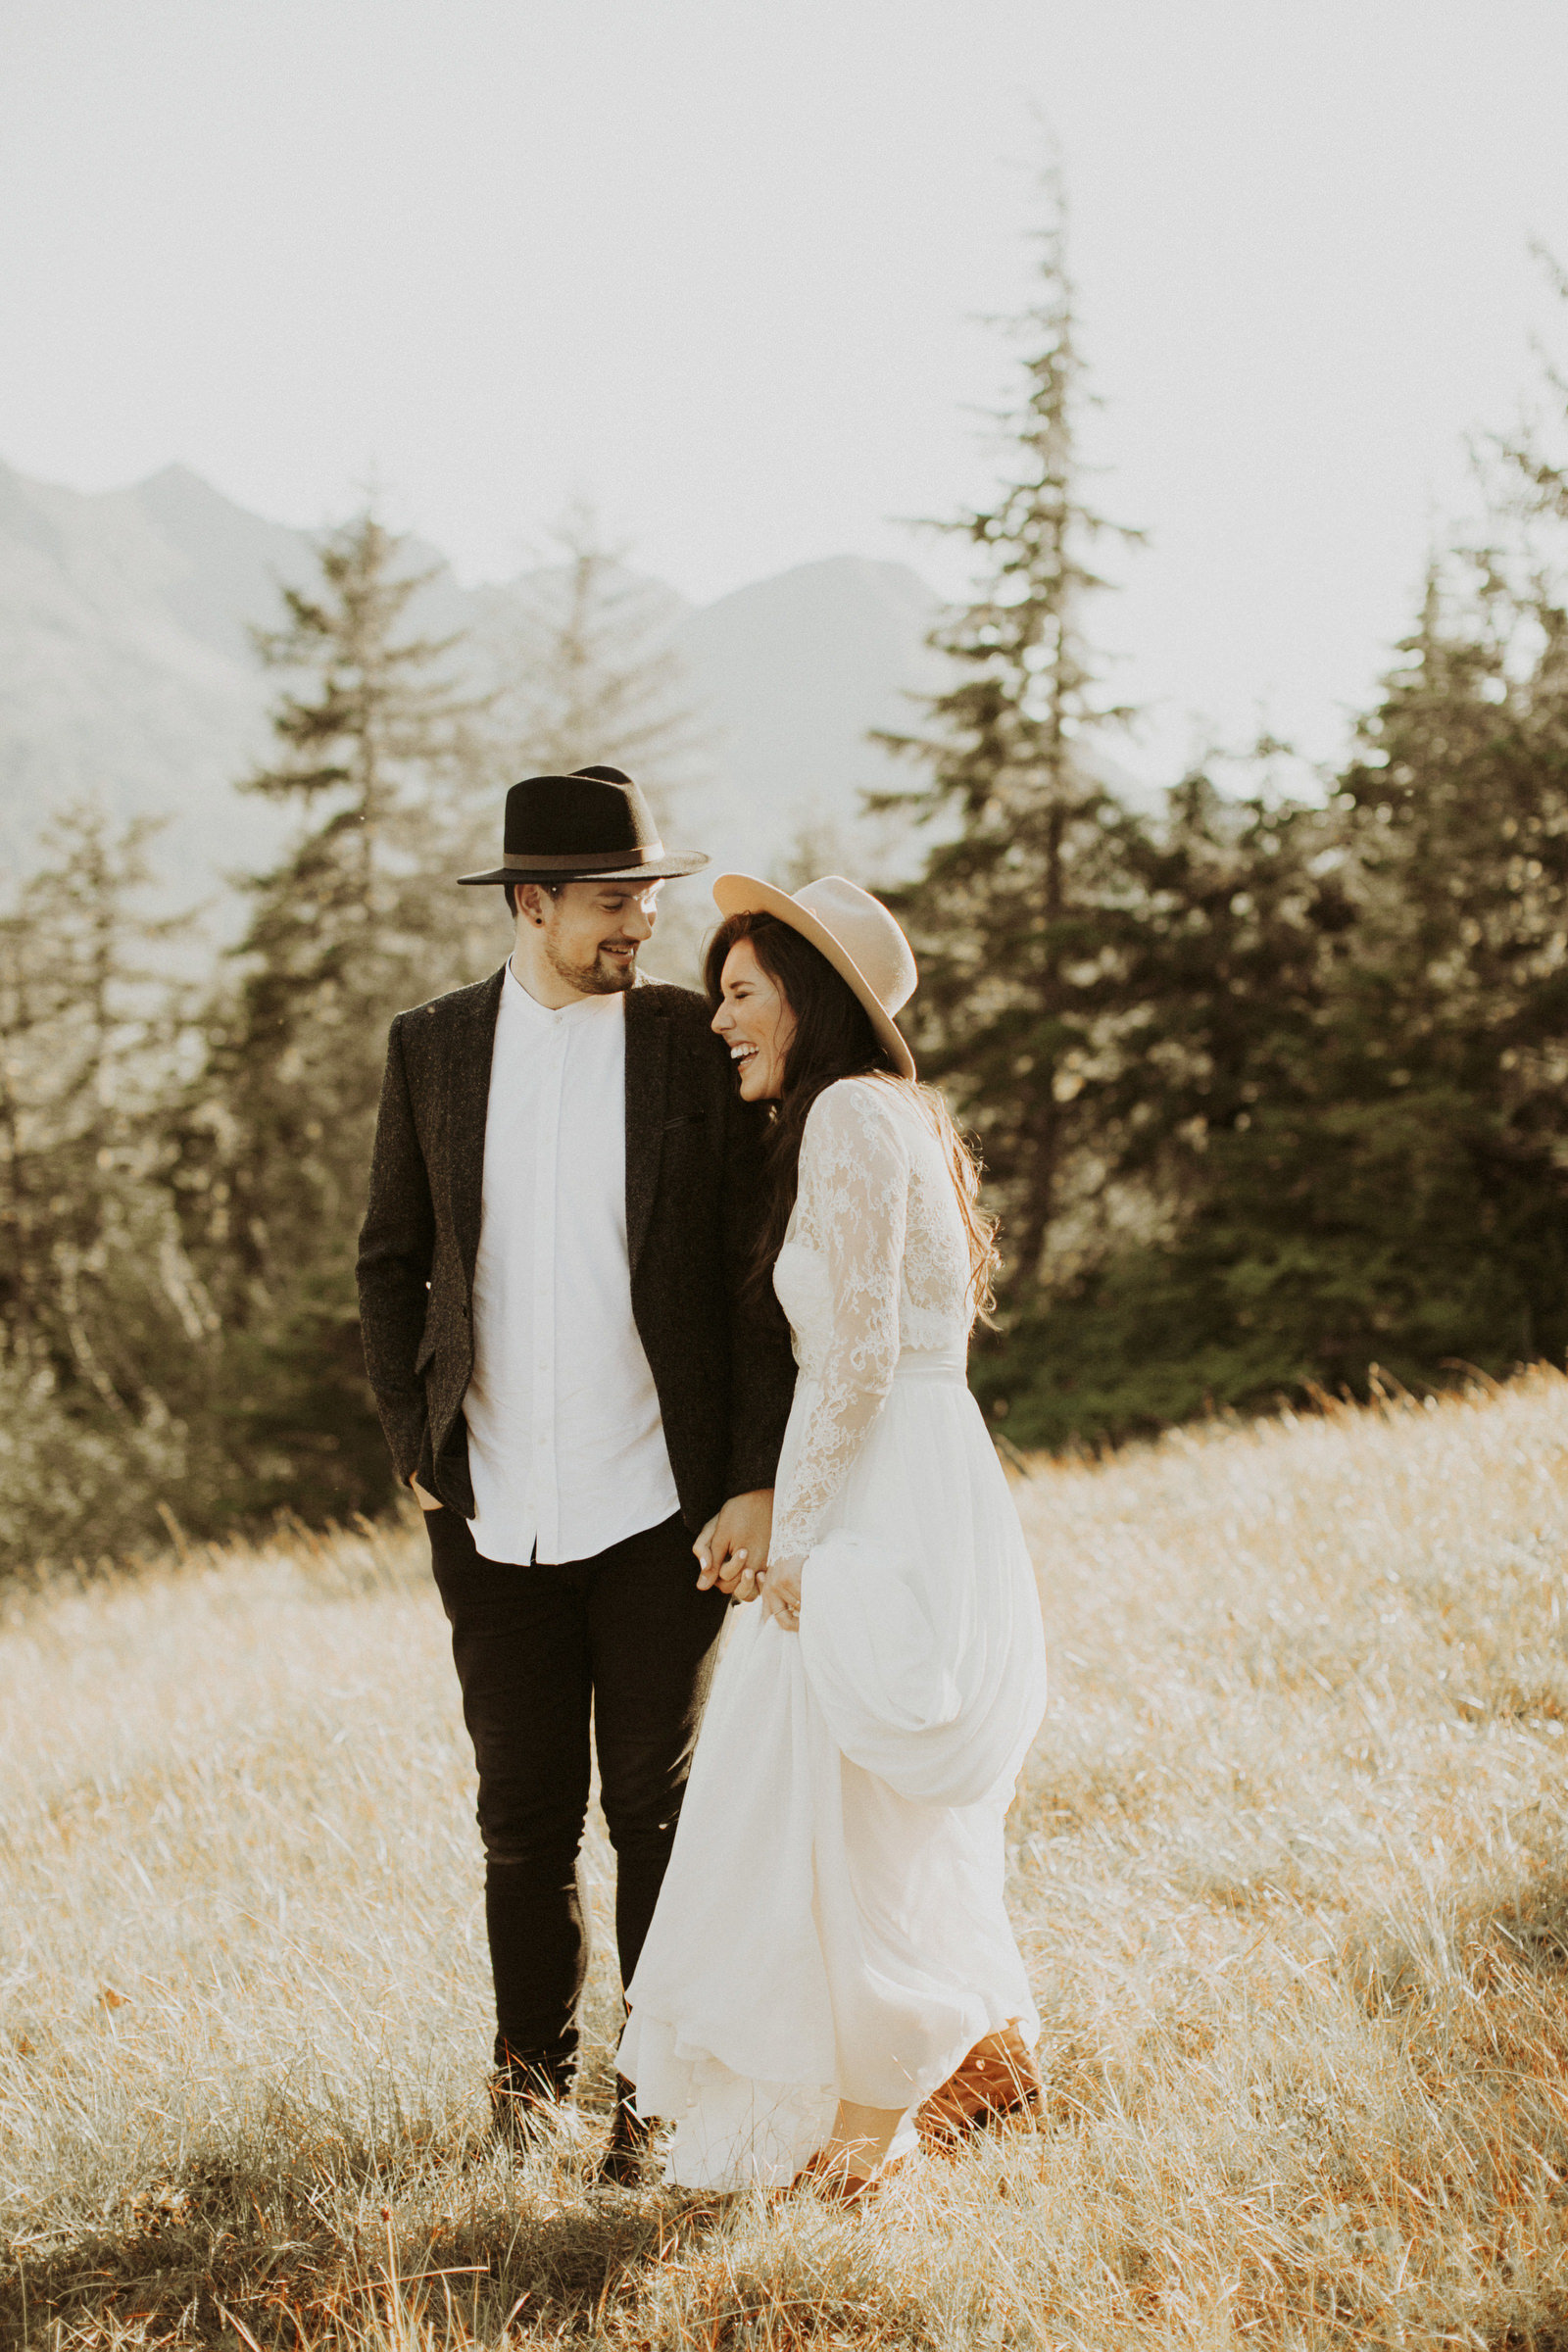 athena-and-camron-alaska-elopement-wedding-inspiration-india-earl-athena-grace-glacier-lagoon-wedding37